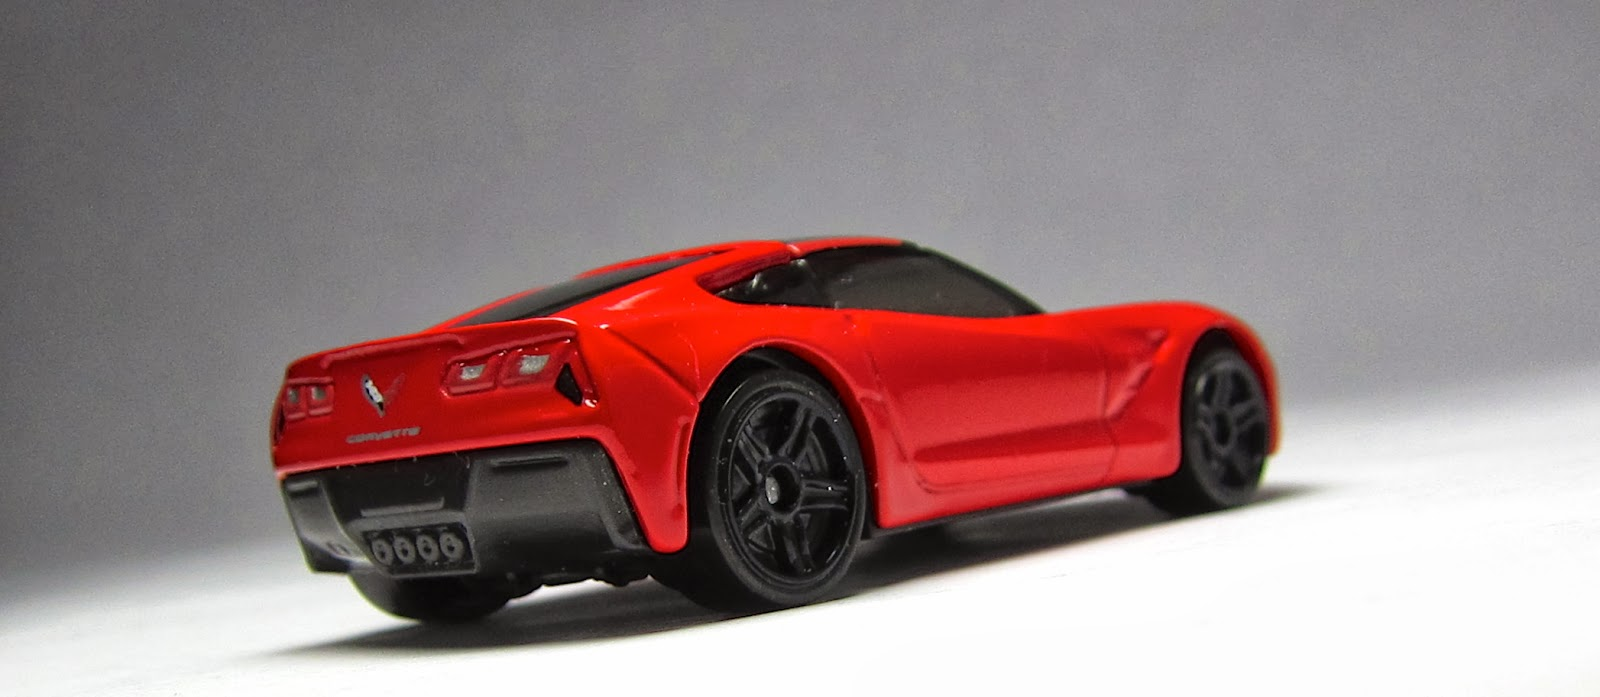 the Lamley Group: First Look: Hot Wheels '14 Corvette Stingray